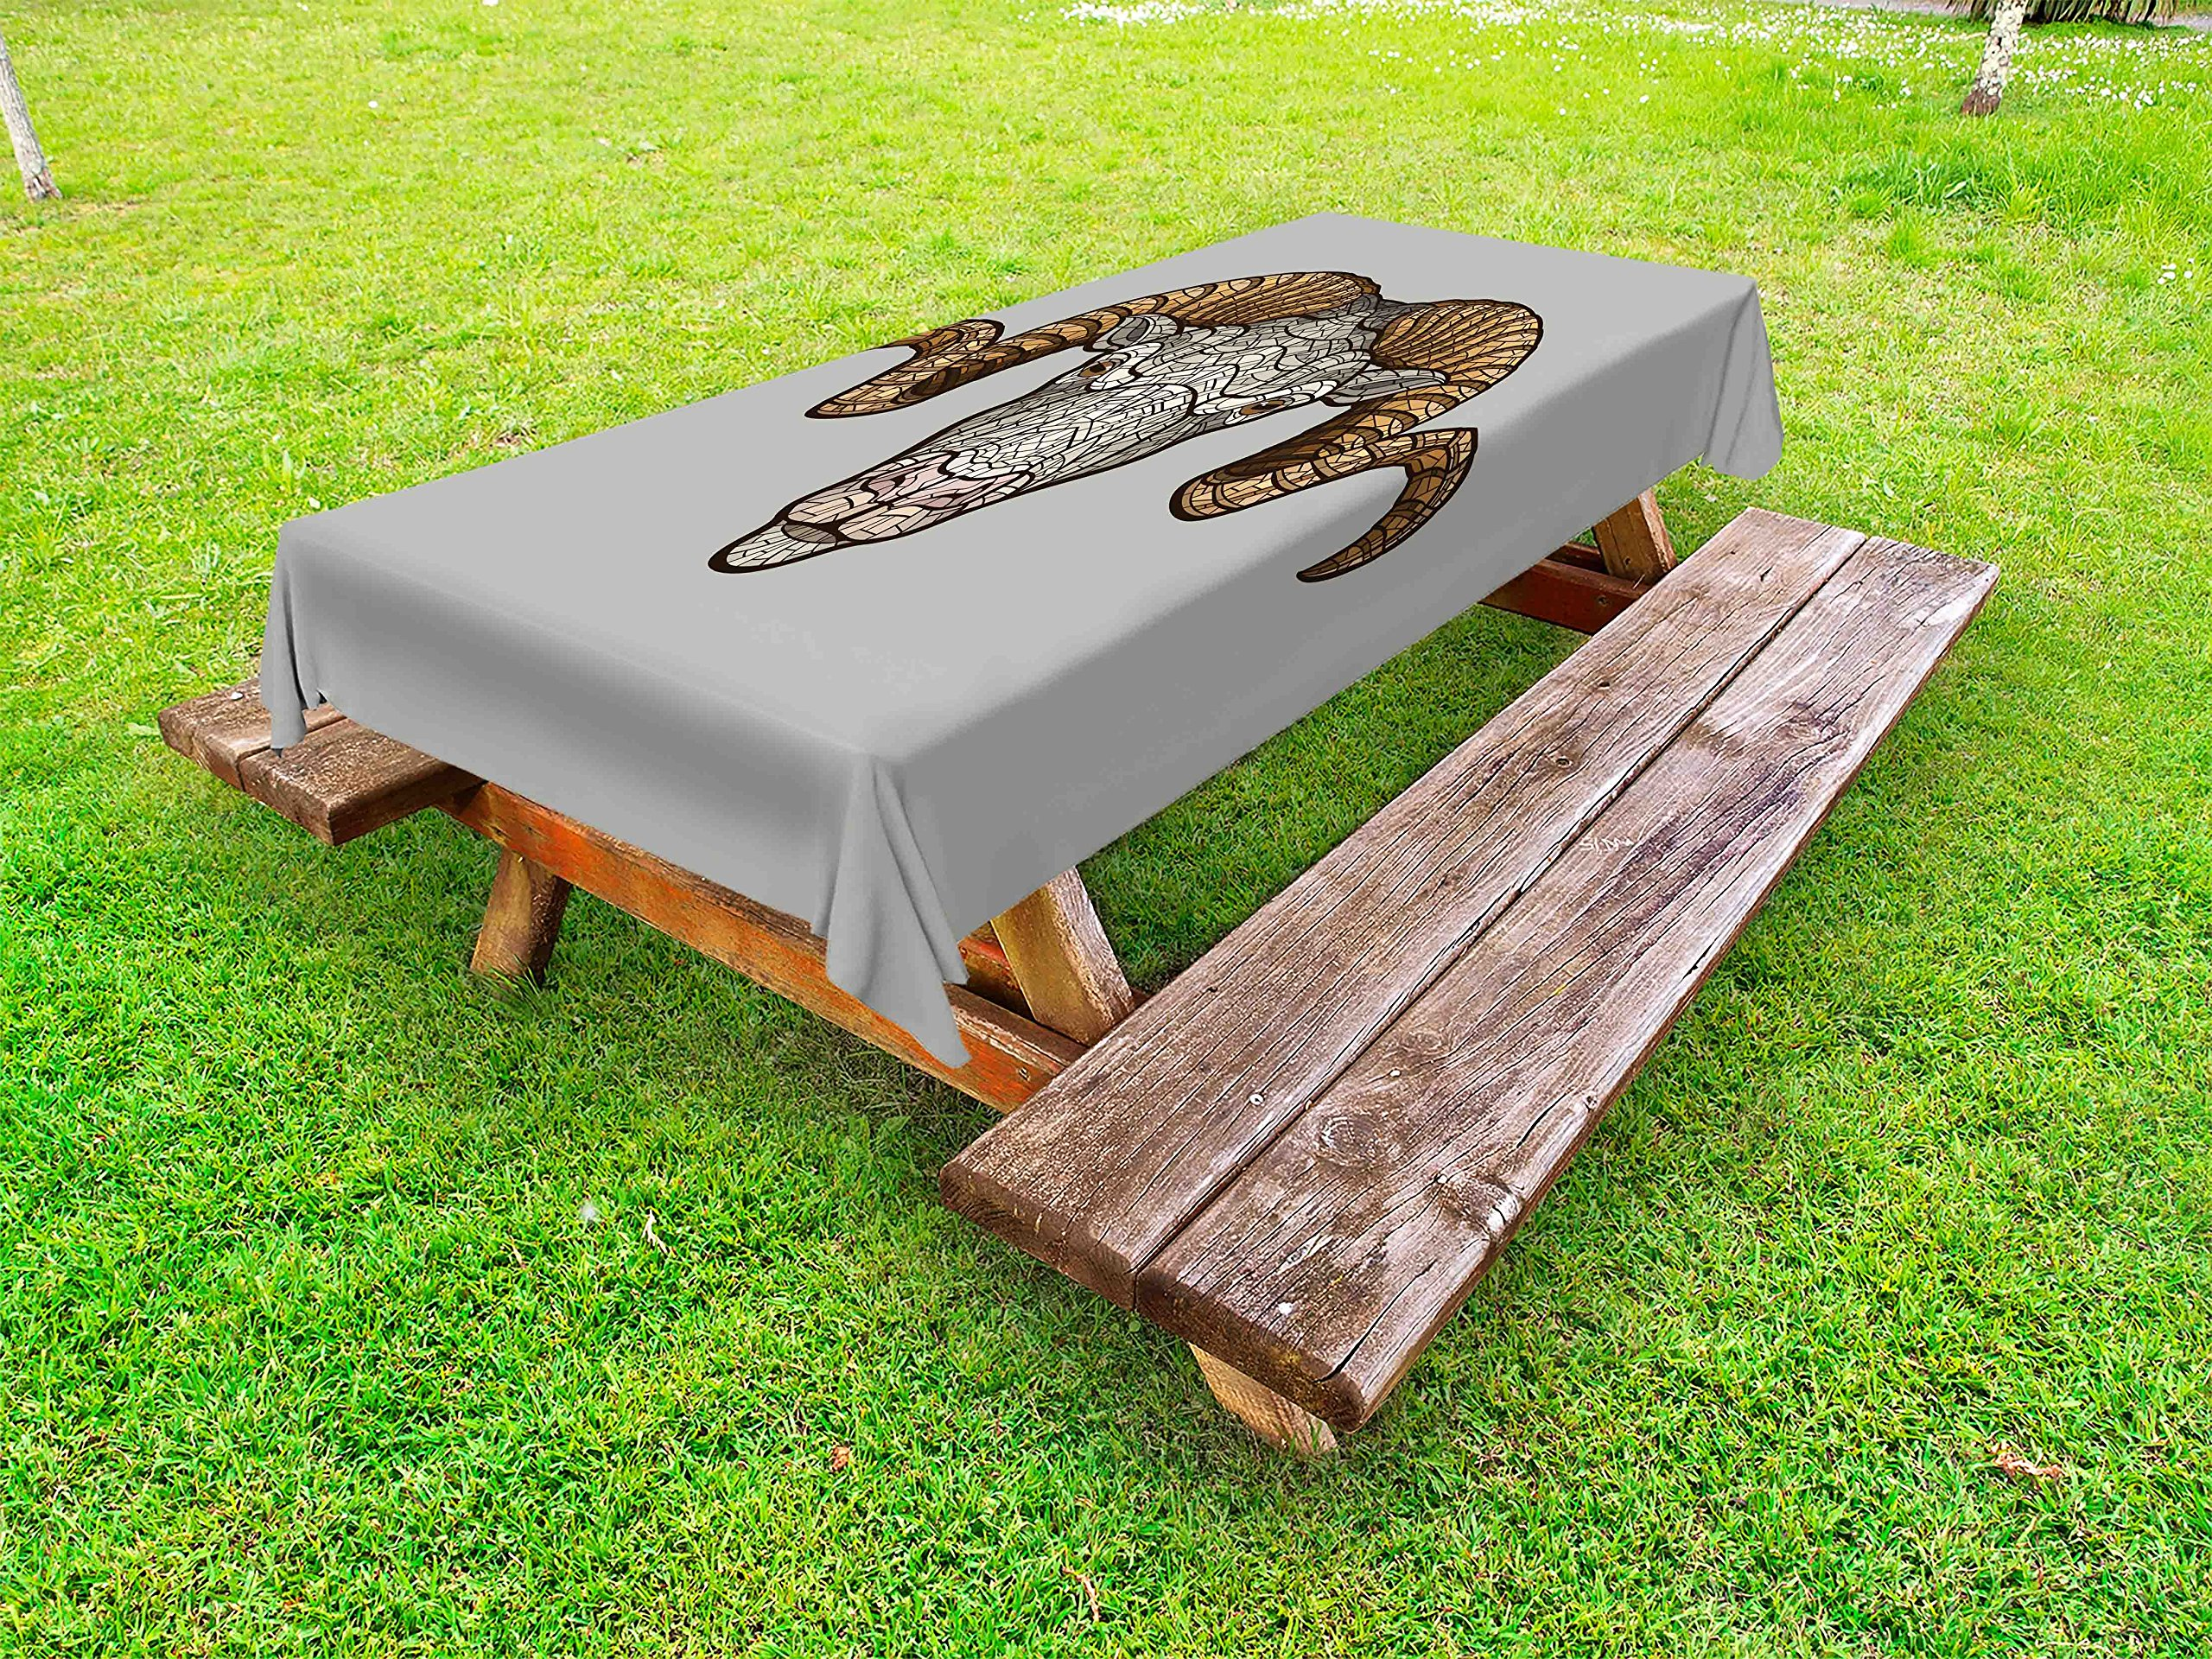 Ambesonne Zodiac Aries Outdoor Tablecloth, Animal with Artistic Fractal Look and Big Horns Strength Symbol, Decorative Washable Picnic Table Cloth, 58 X 120 inches, Pale Grey and Pale Brown